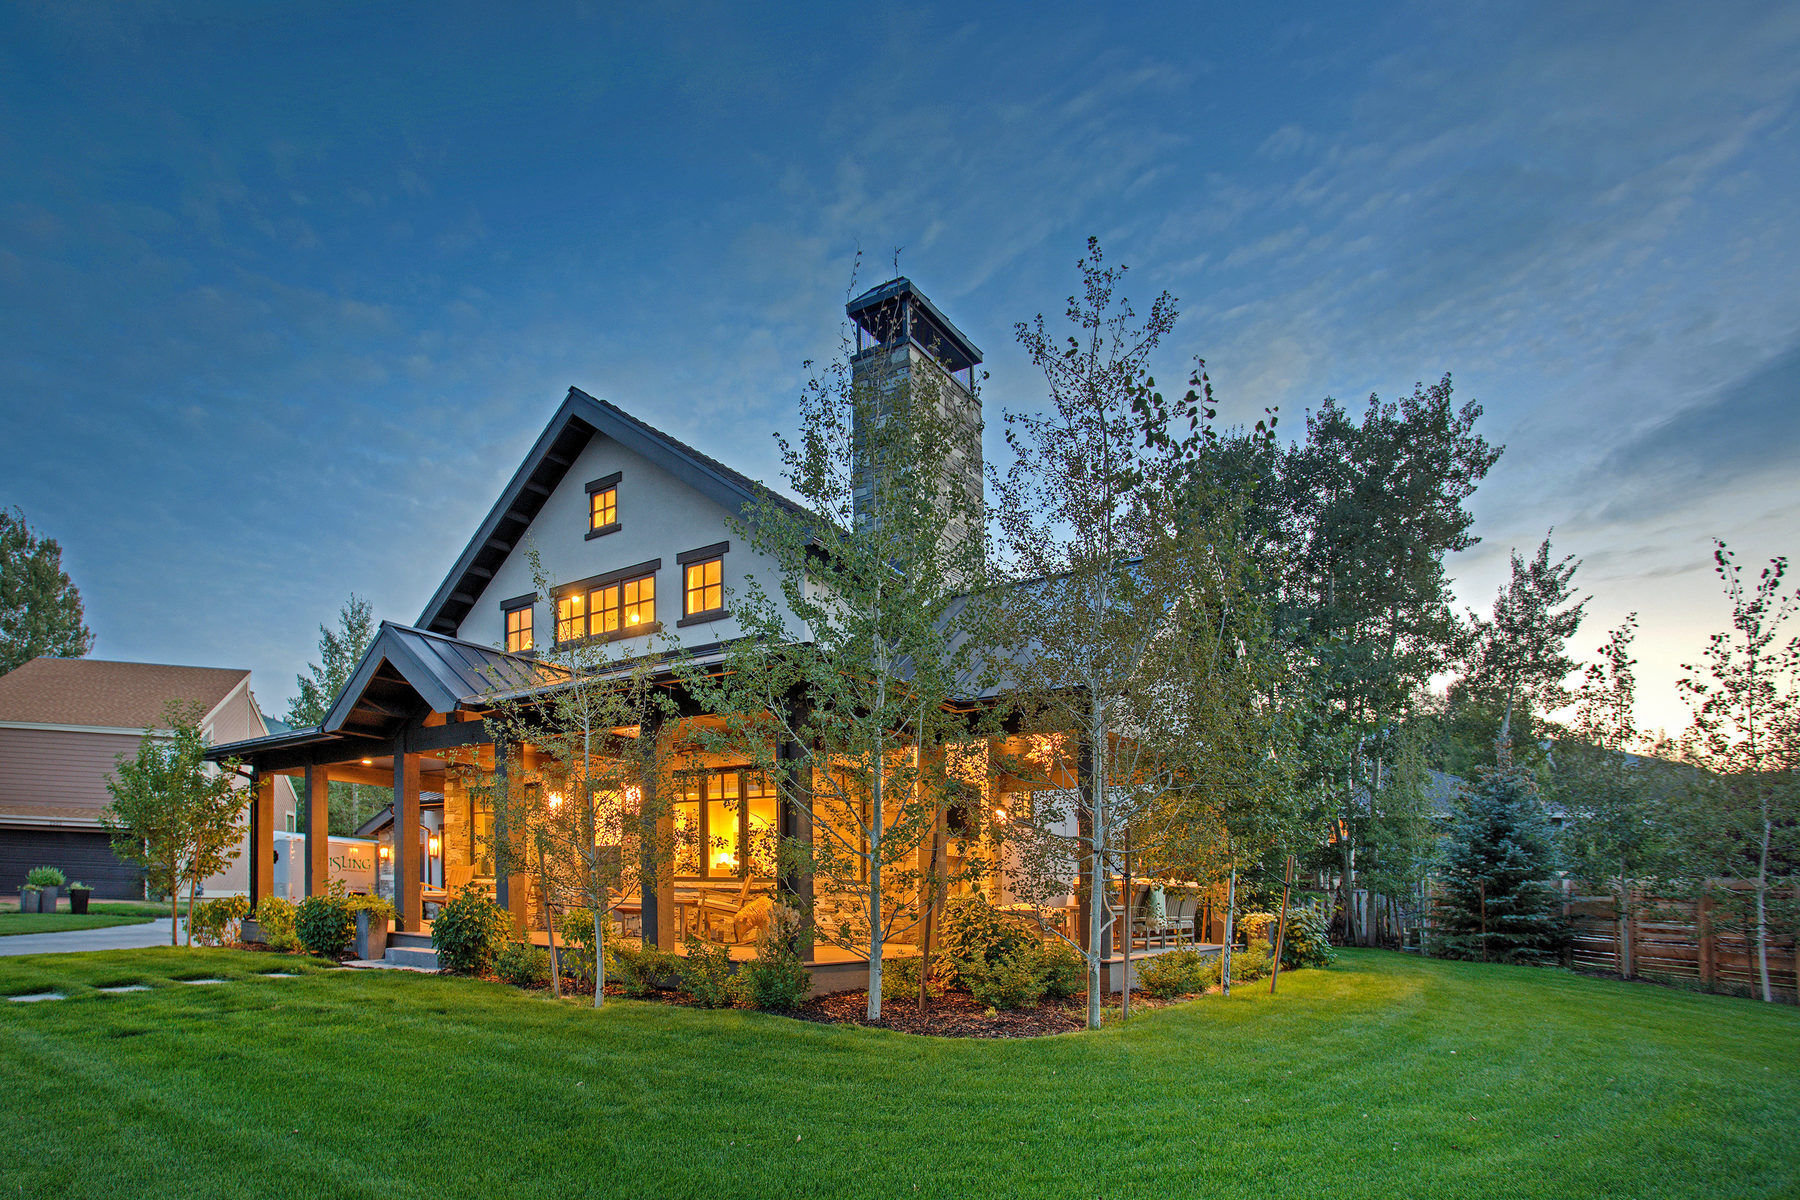 Maison unifamiliale pour l Vente à Park Meadows Perfection! 2525 Holiday Ranch Loop Park City, Utah, 84060 États-Unis